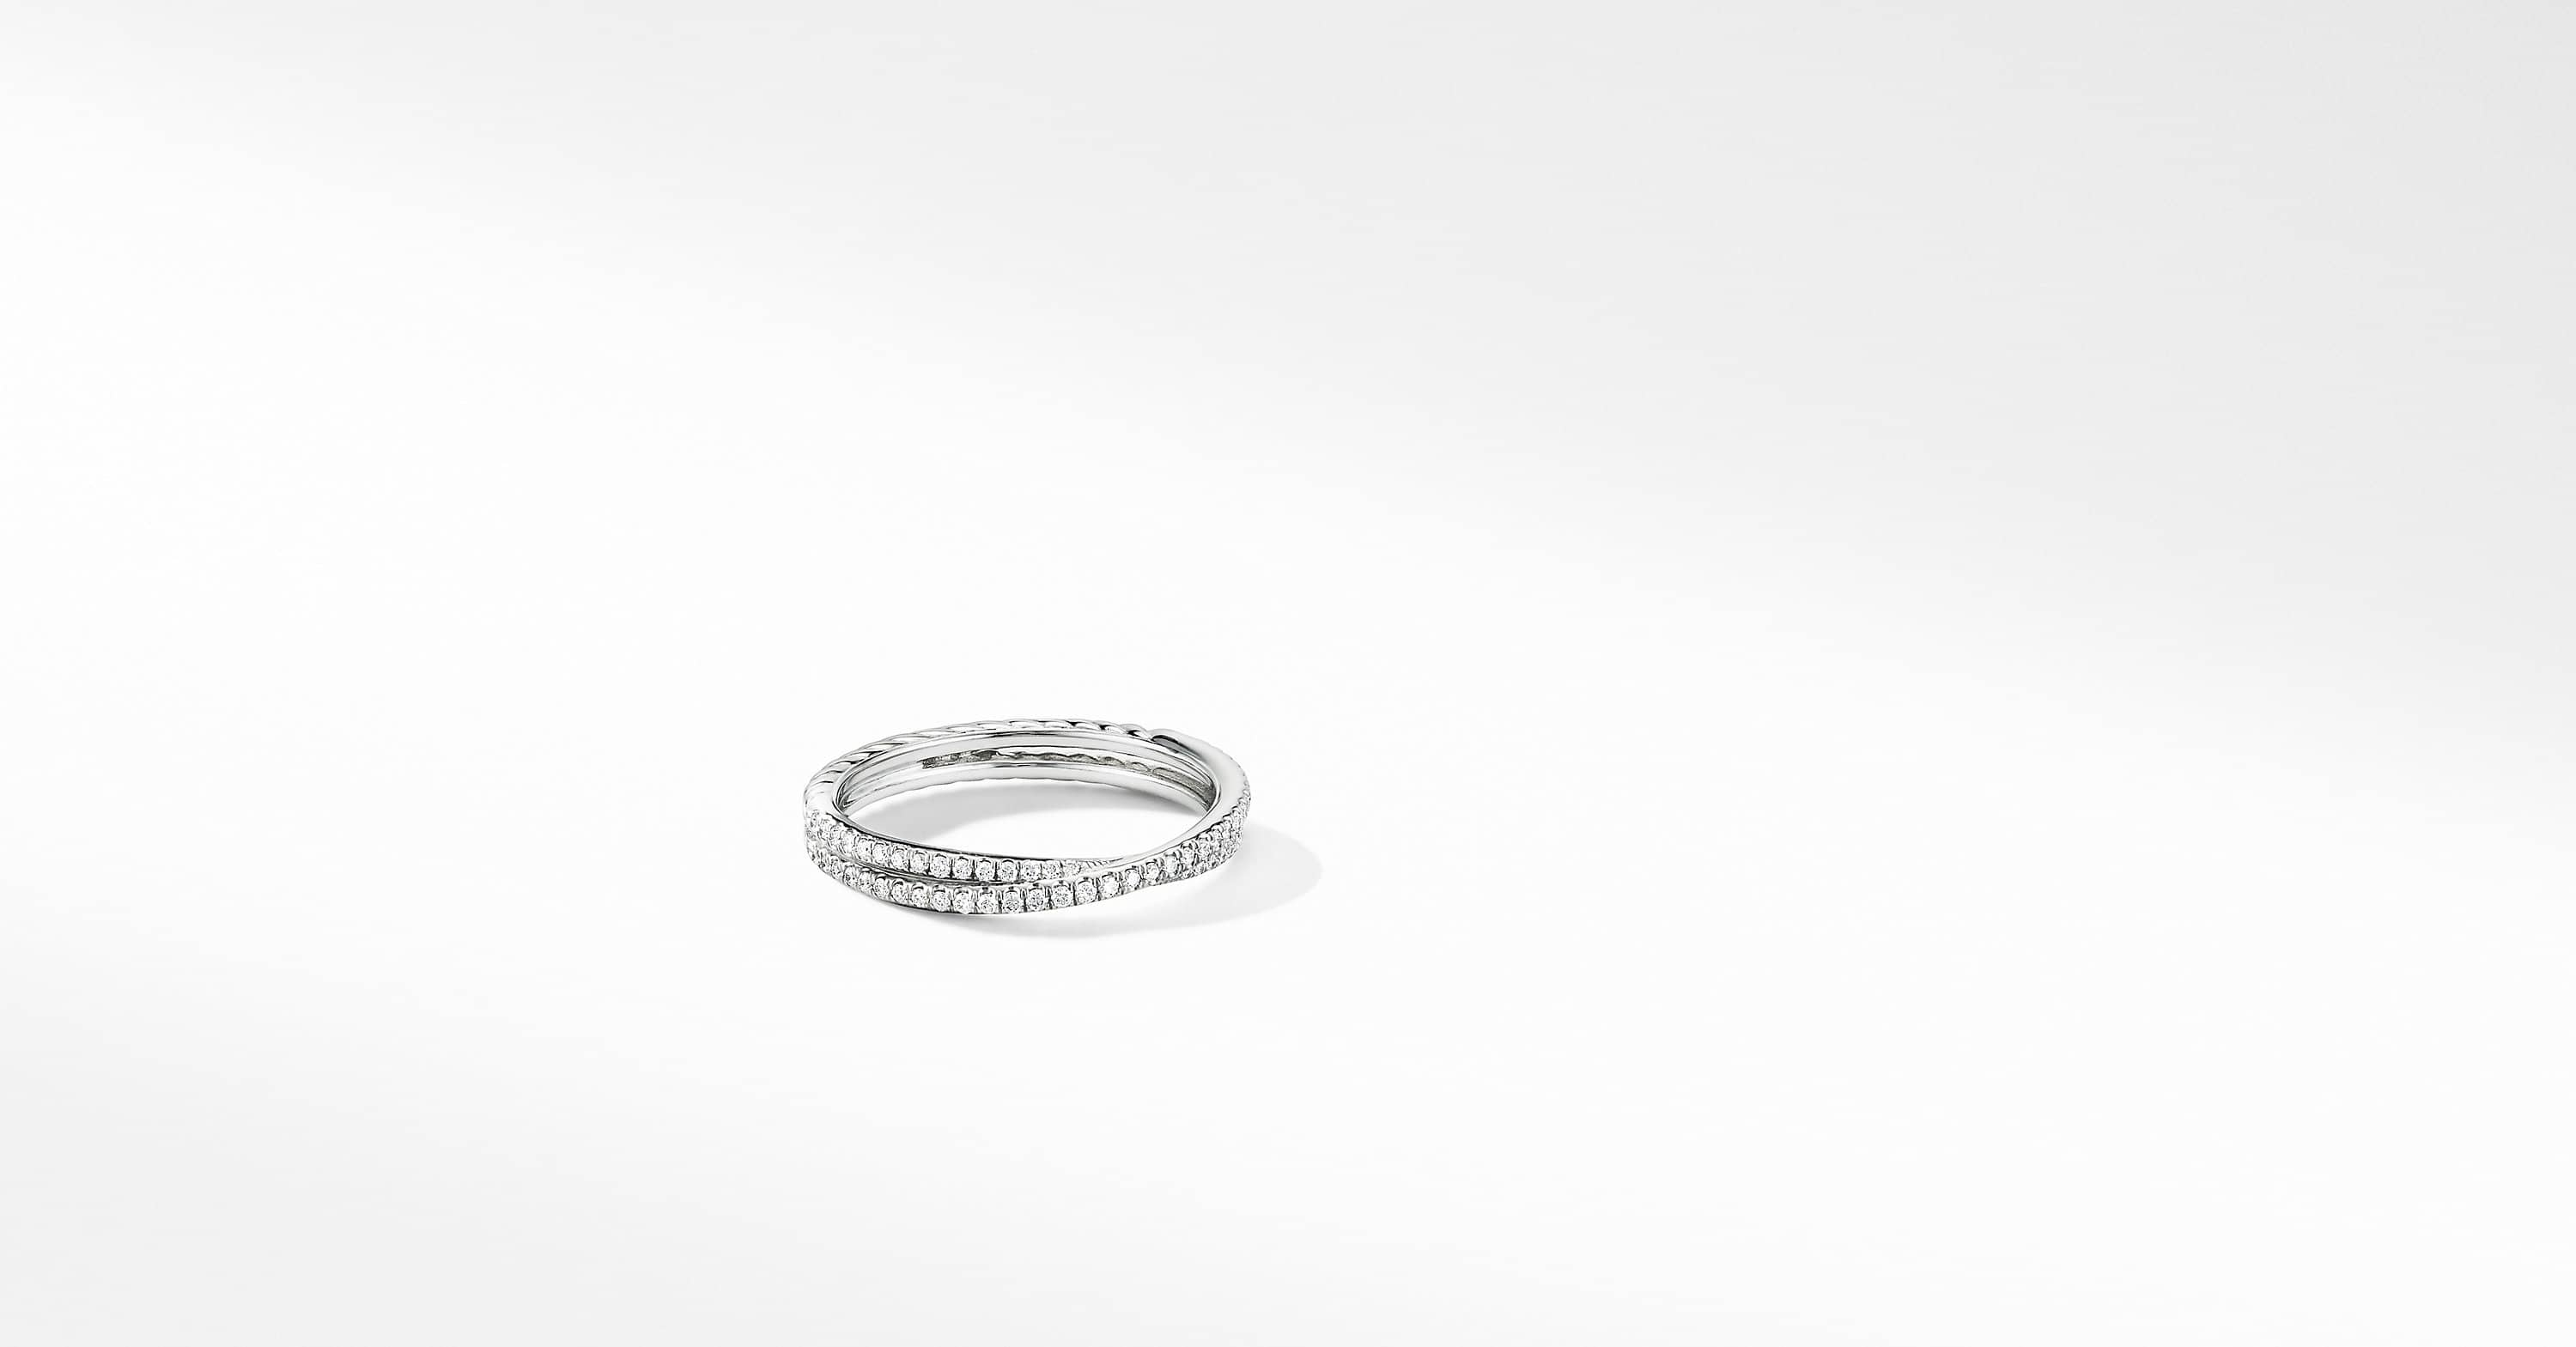 Micro Pavé DY Crossover Band Ring in Platinum